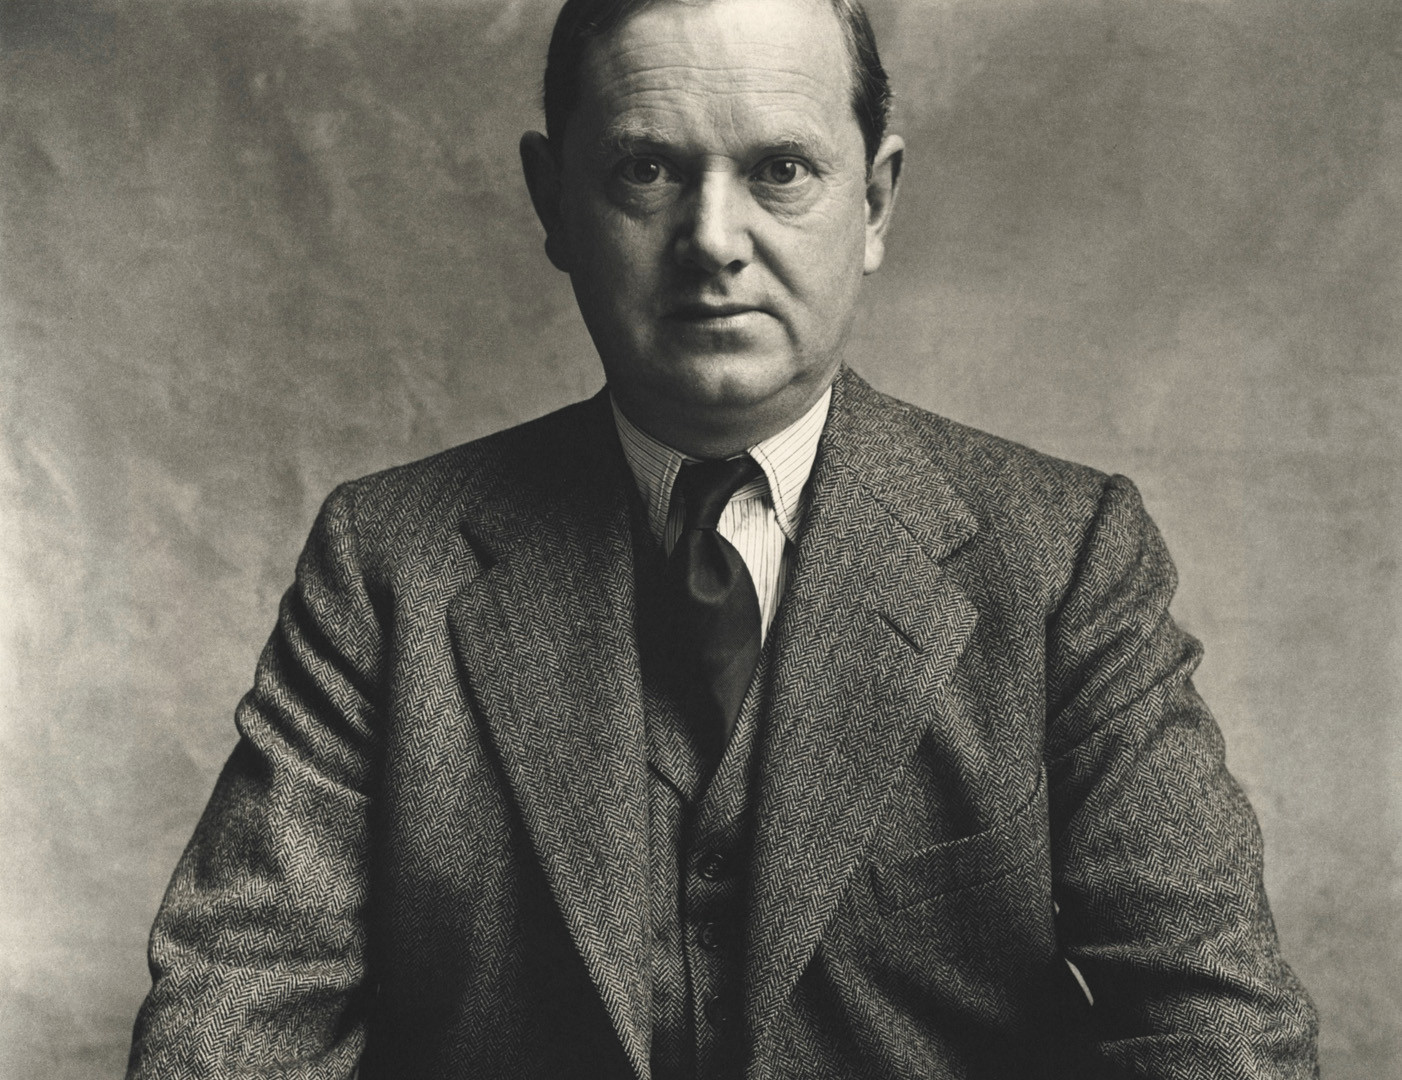 Irving Penn, Evelyn Waugh, London, 1950